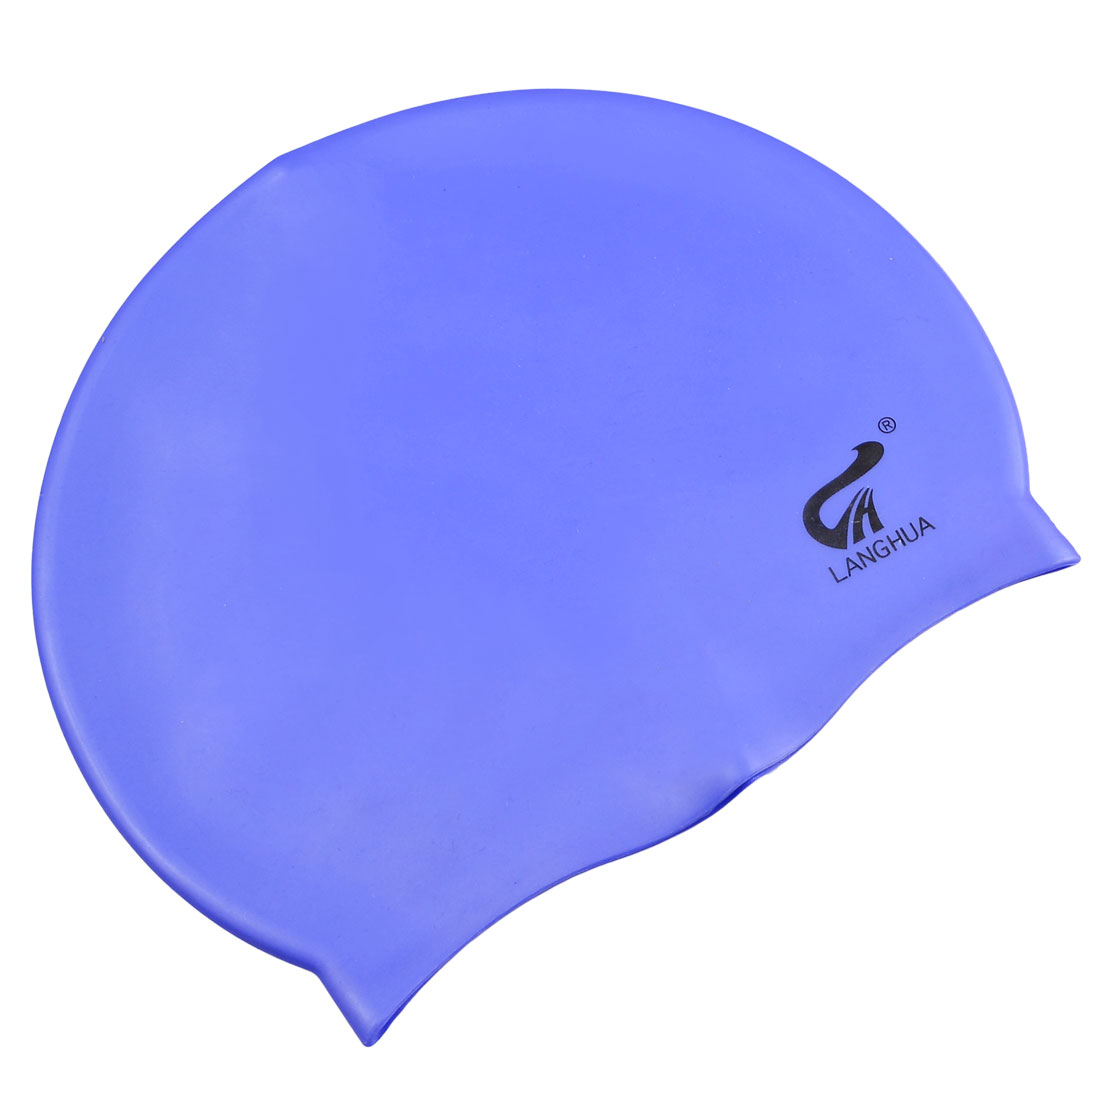 Adults Dome Shaped Elastic Light Blue Soft Plastic Swimming Swim Cap Hat